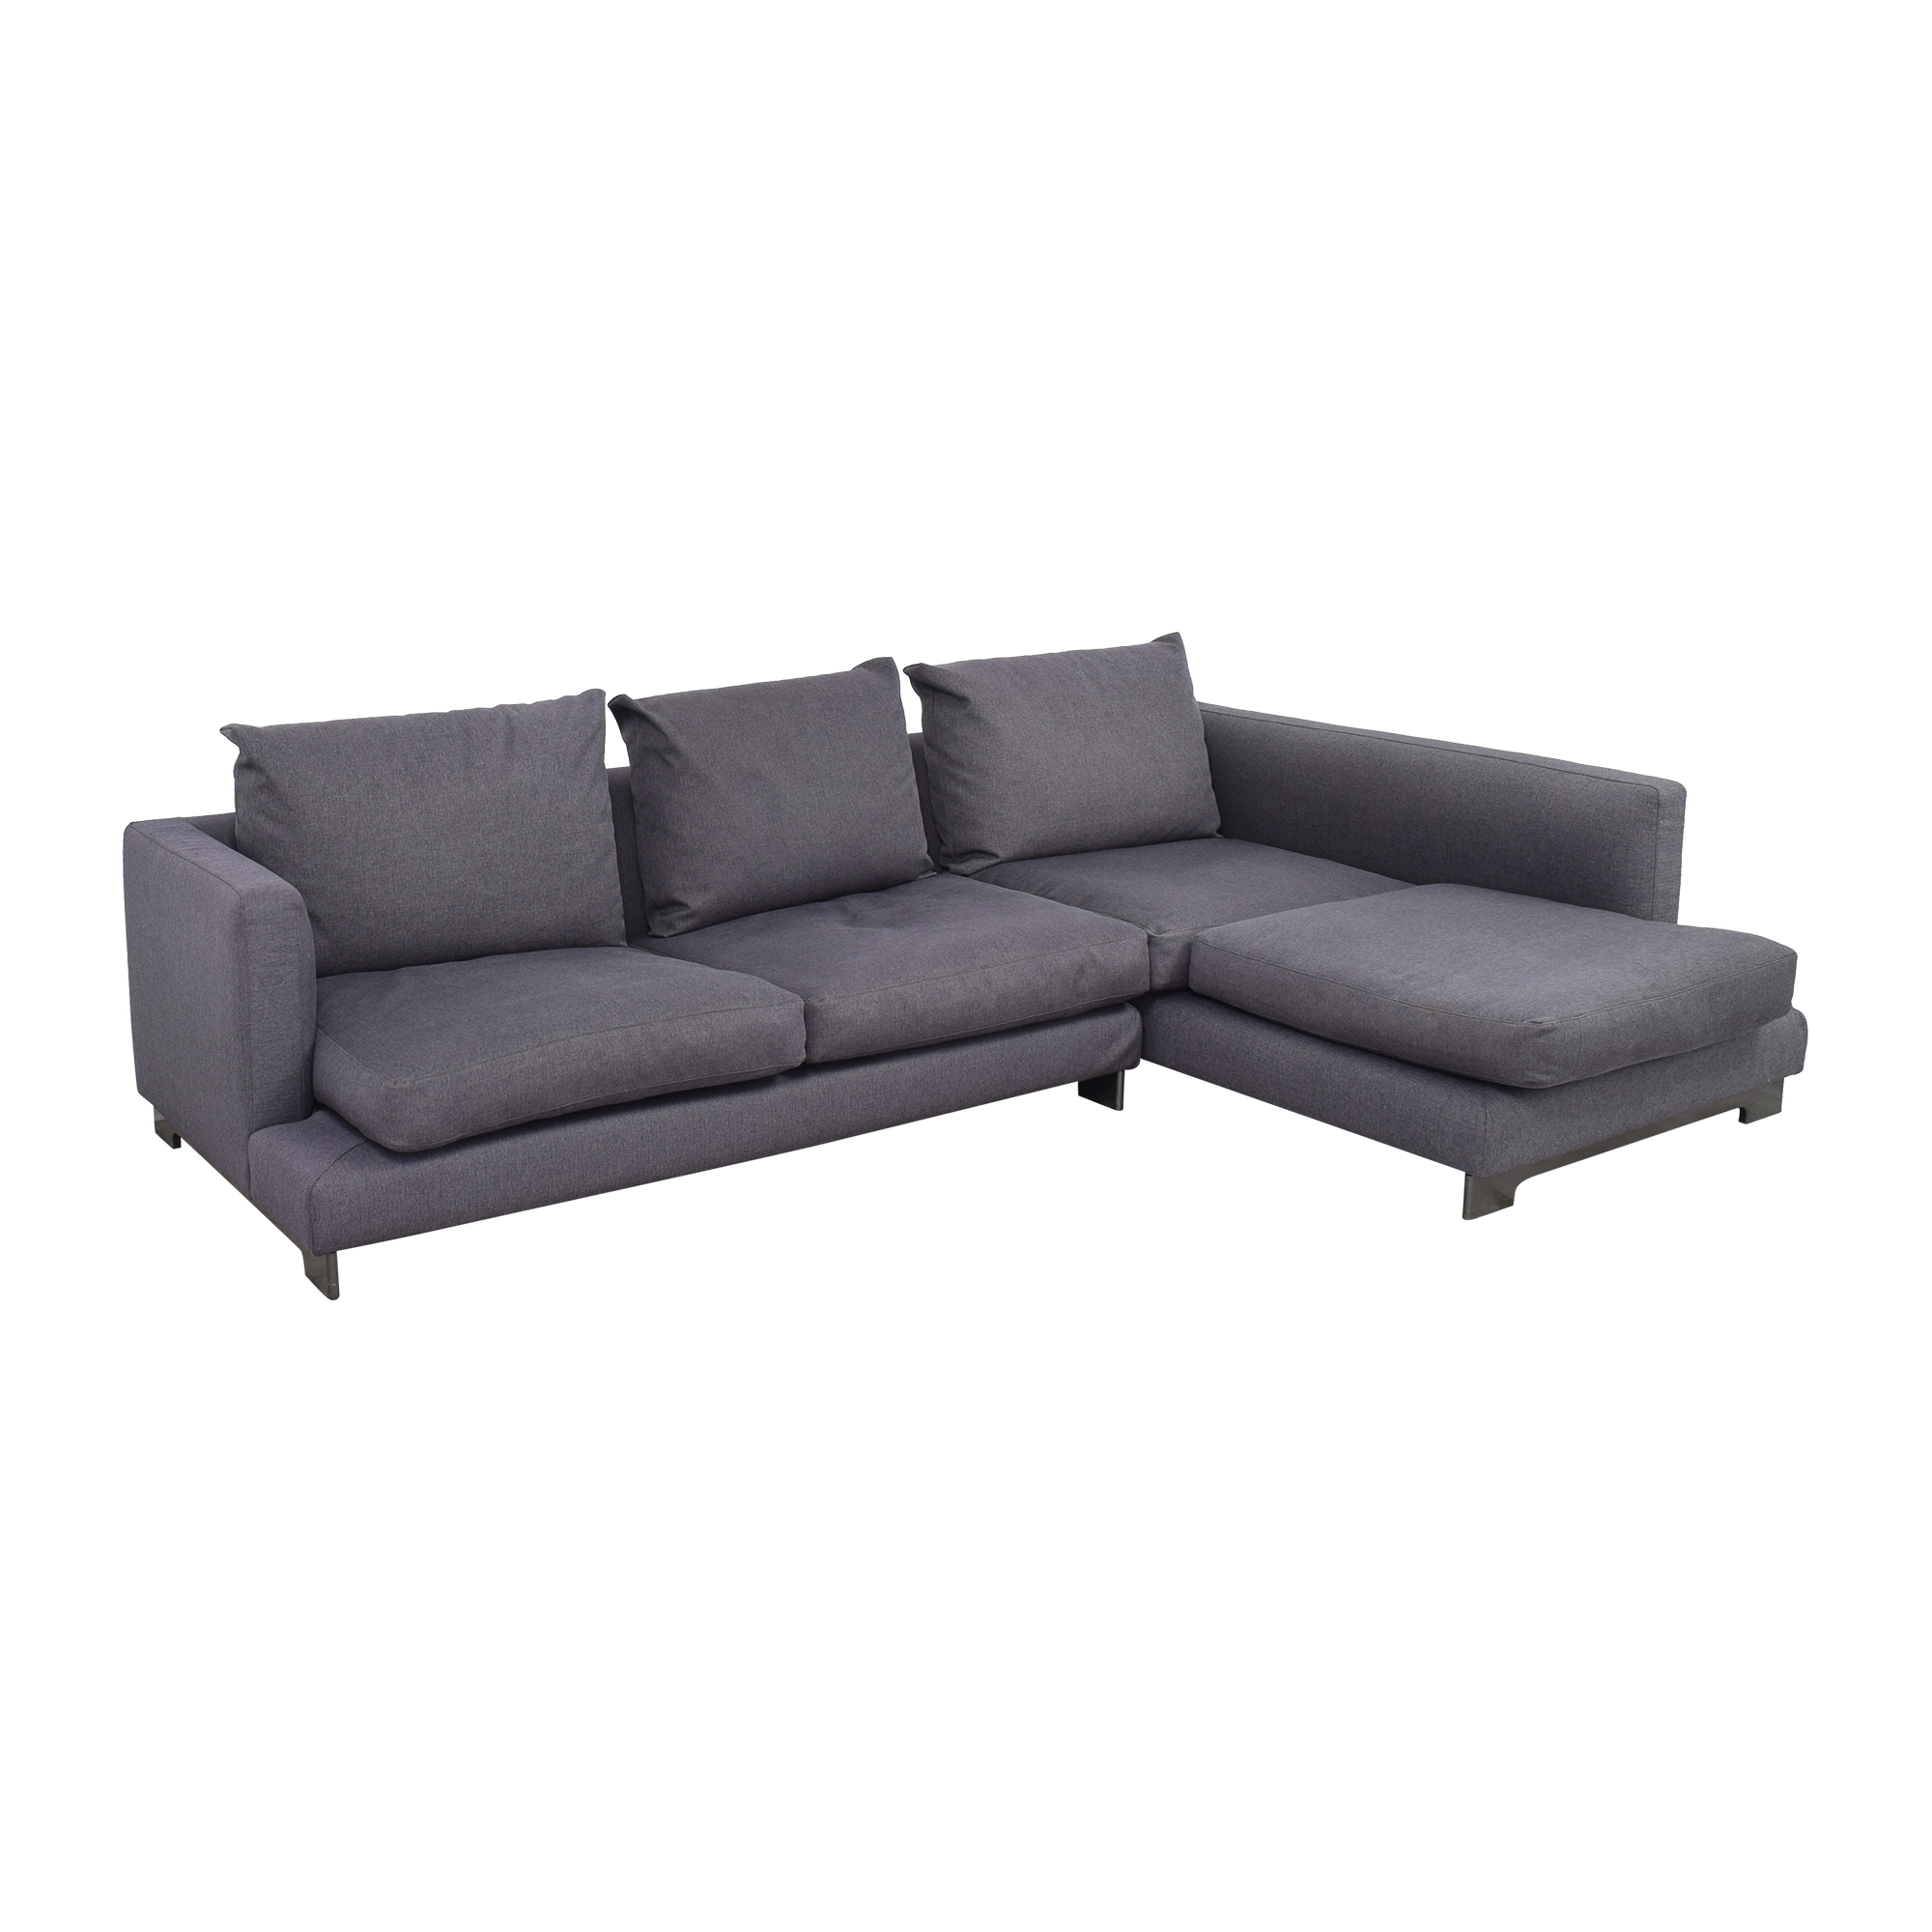 Camerich Camerich Lazy Time Chaise Sectional Sofa discount